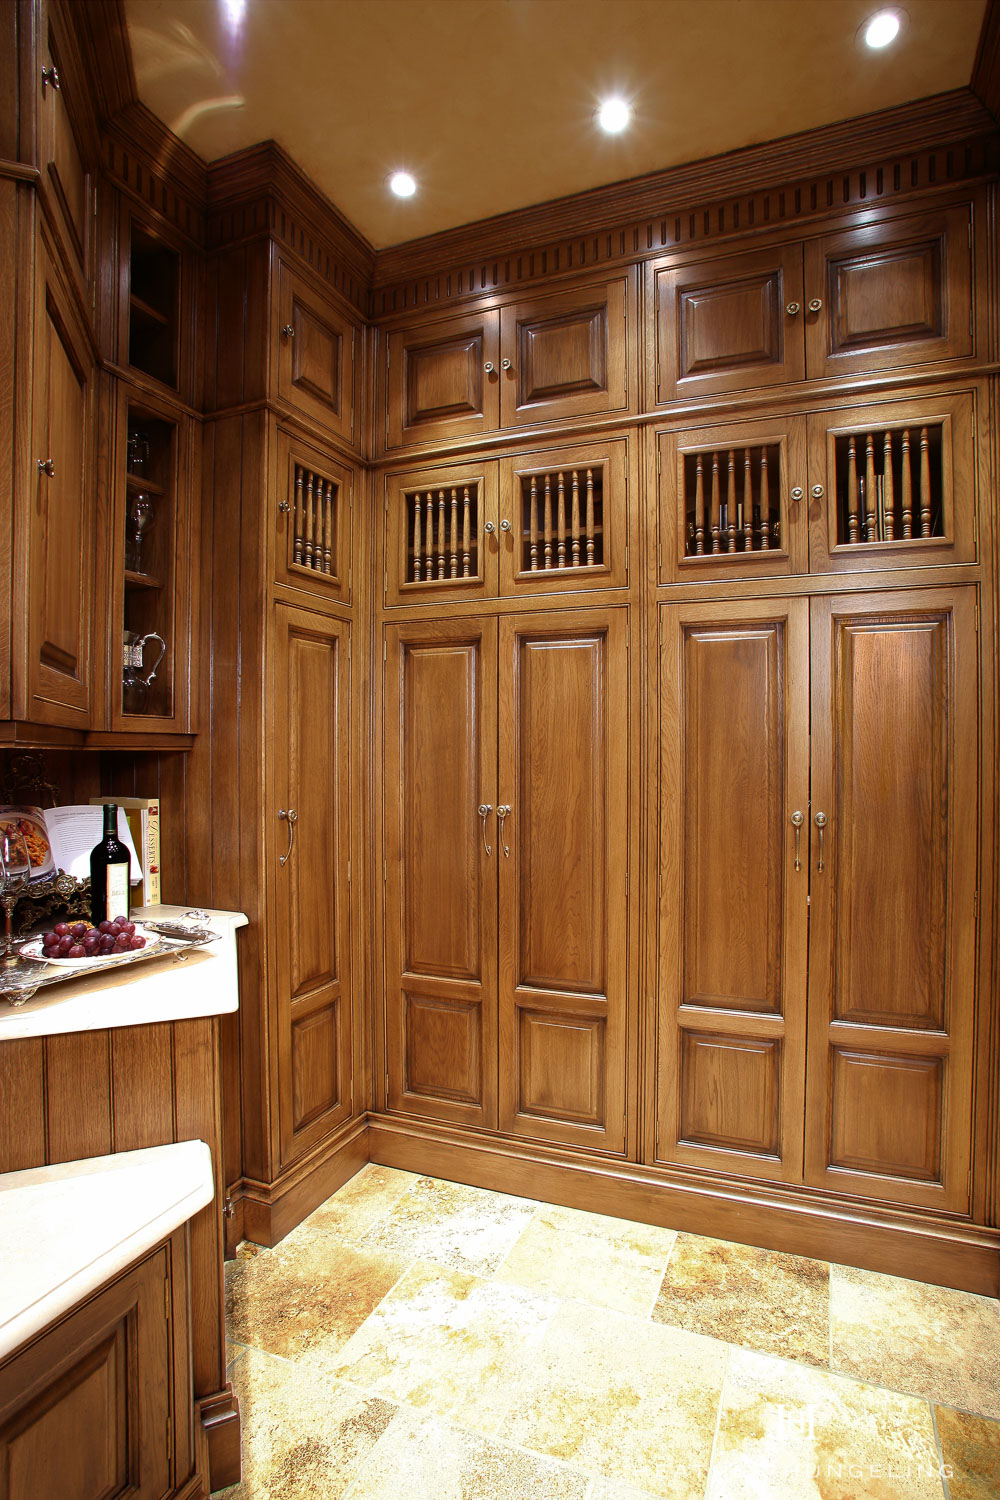 A small butler's pantry in an adjoining room houses a multitude of serving pieces.